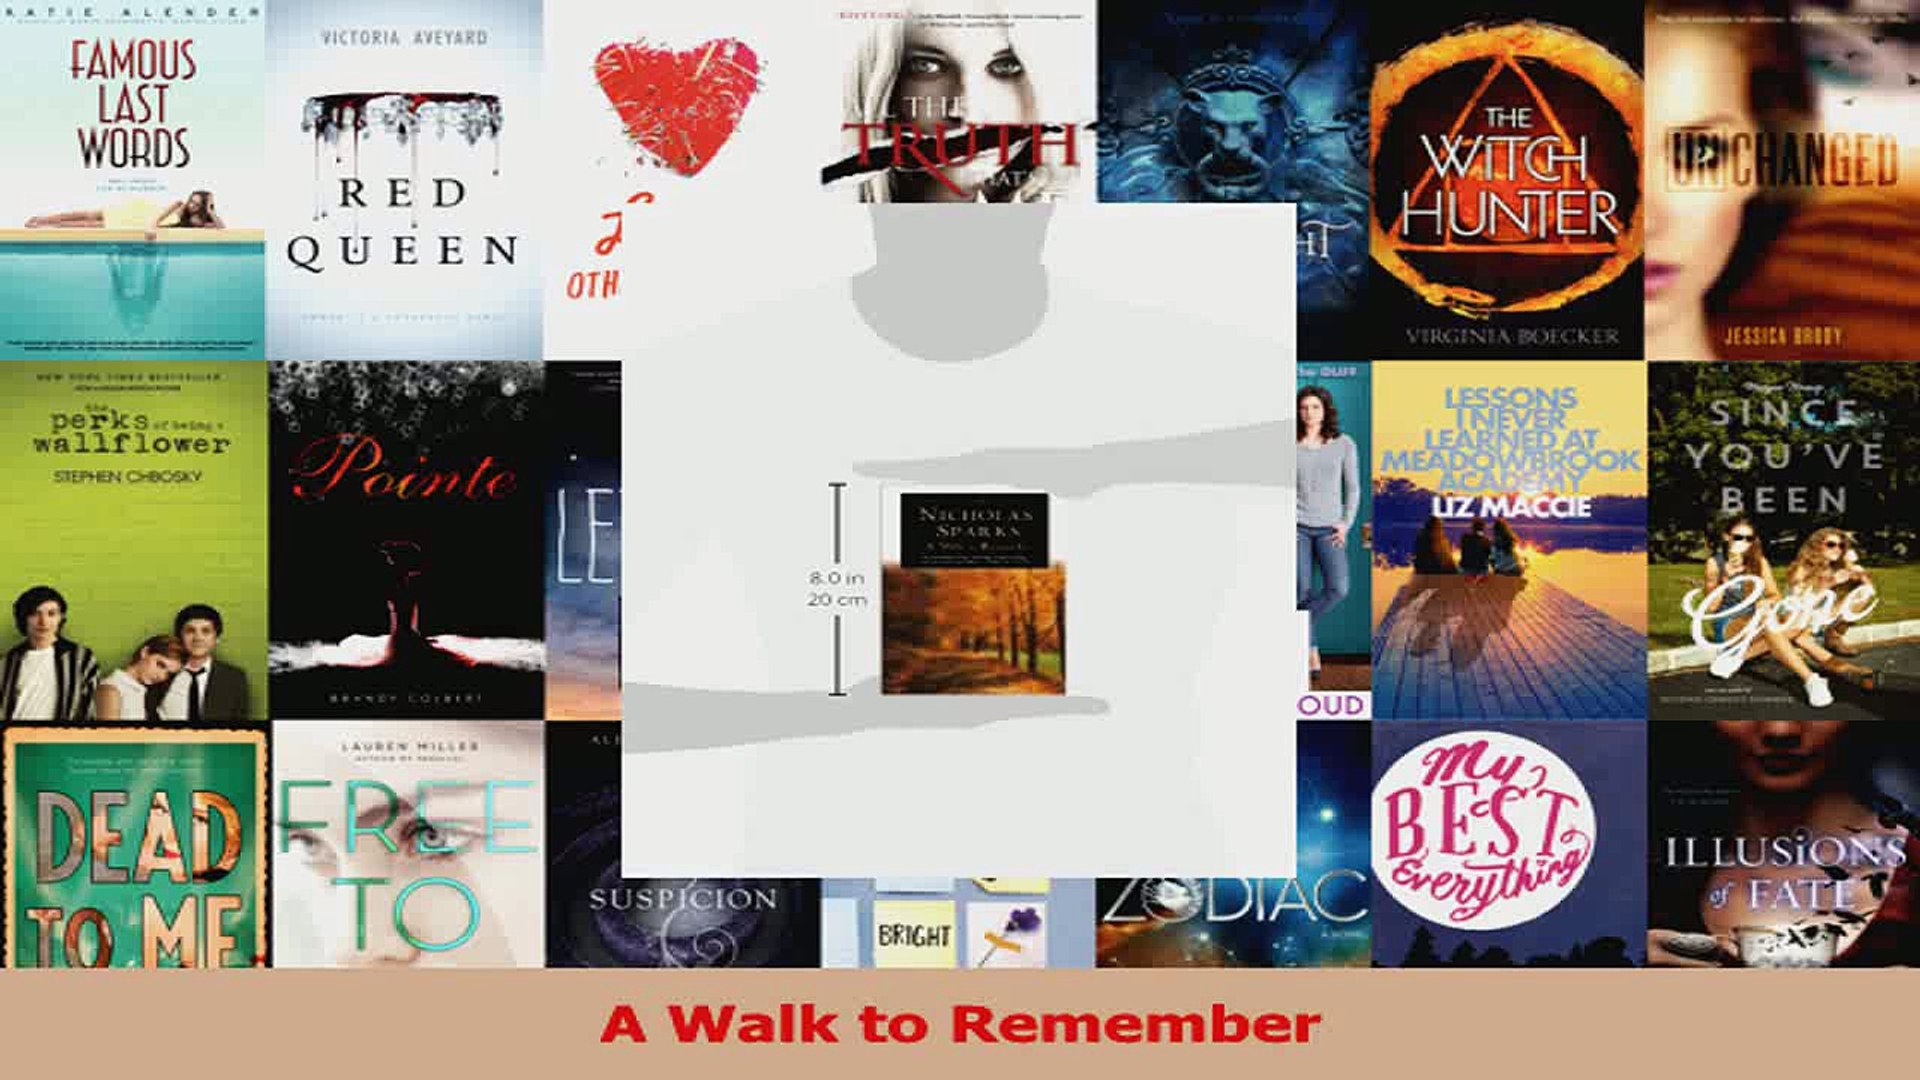 a walk to remember full movie online free dailymotion